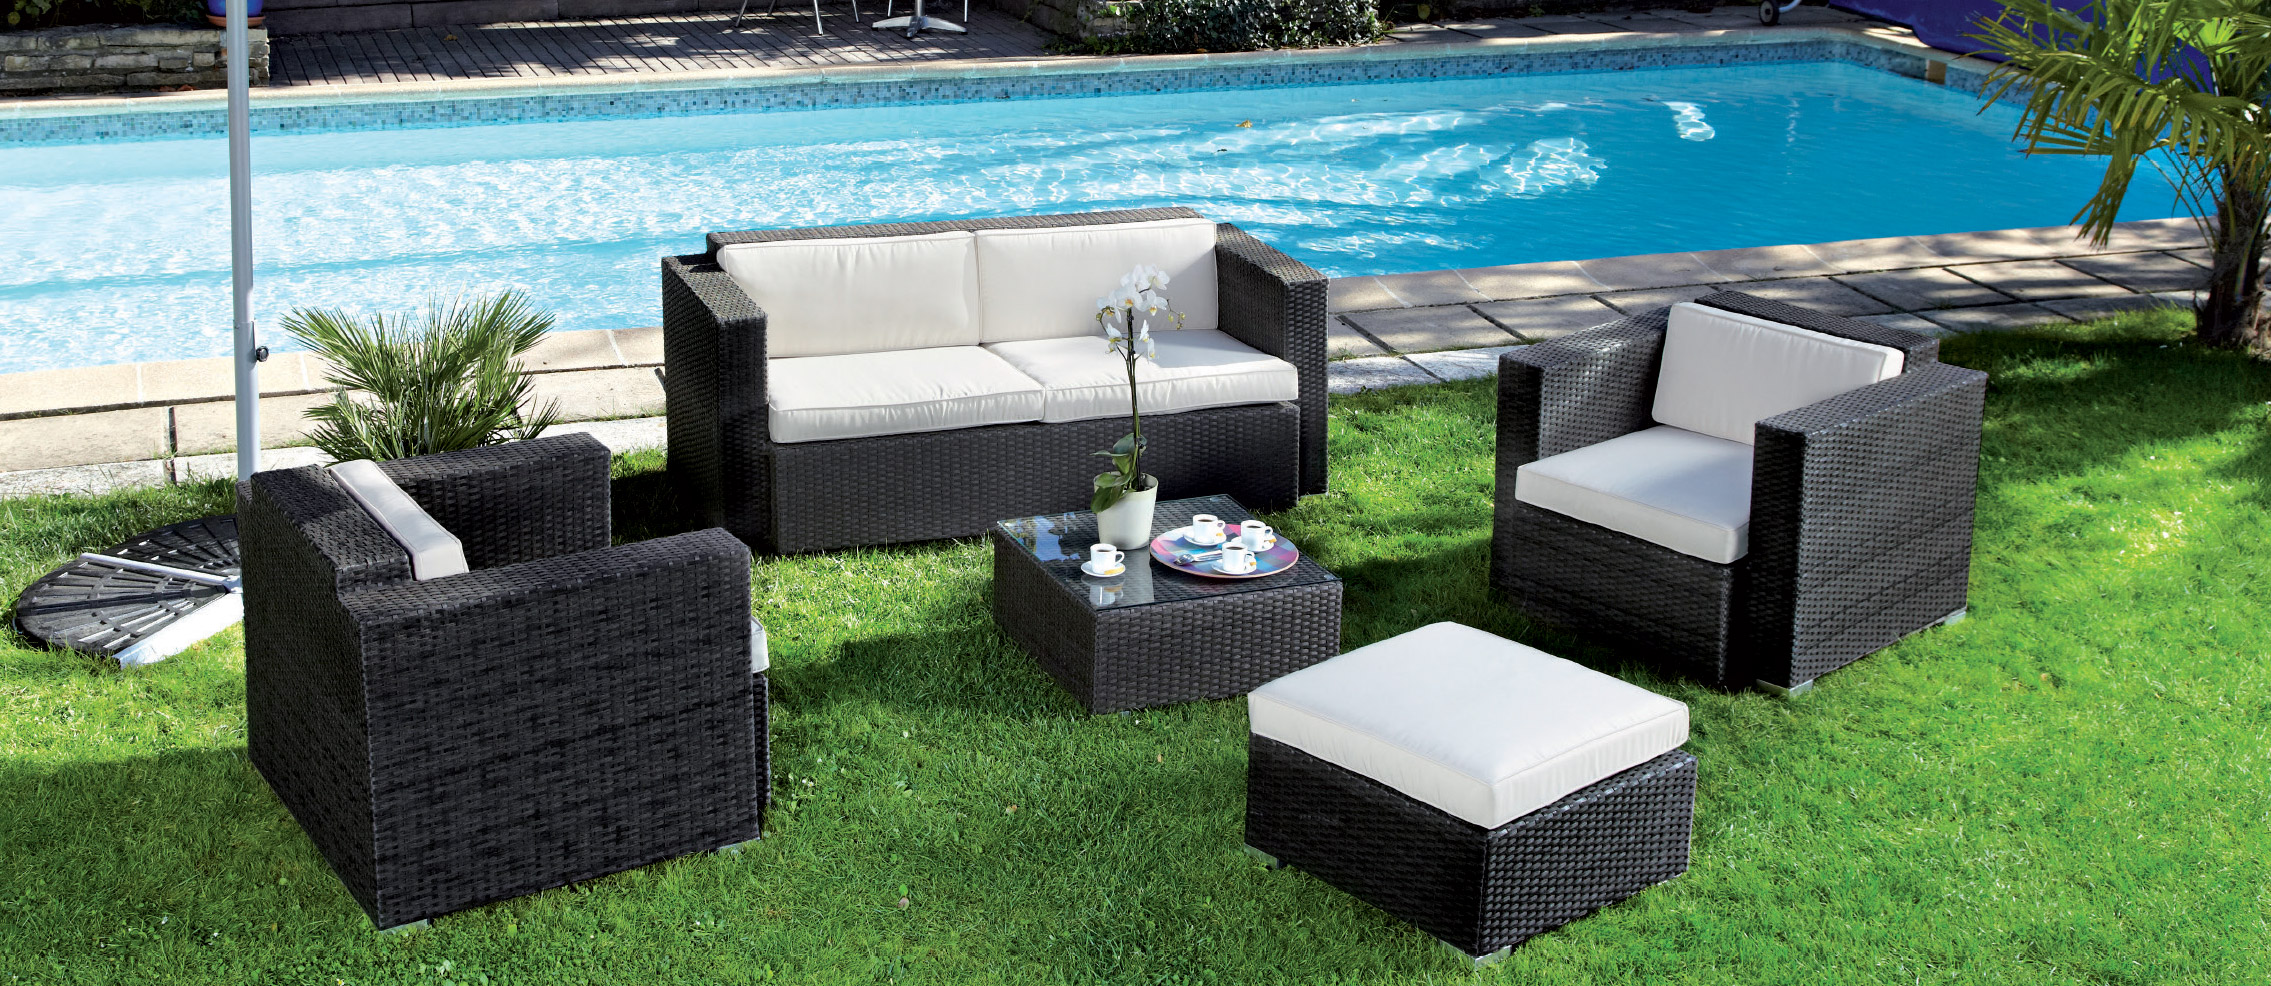 salon de jardin en r sine tress e pas cher belgique. Black Bedroom Furniture Sets. Home Design Ideas